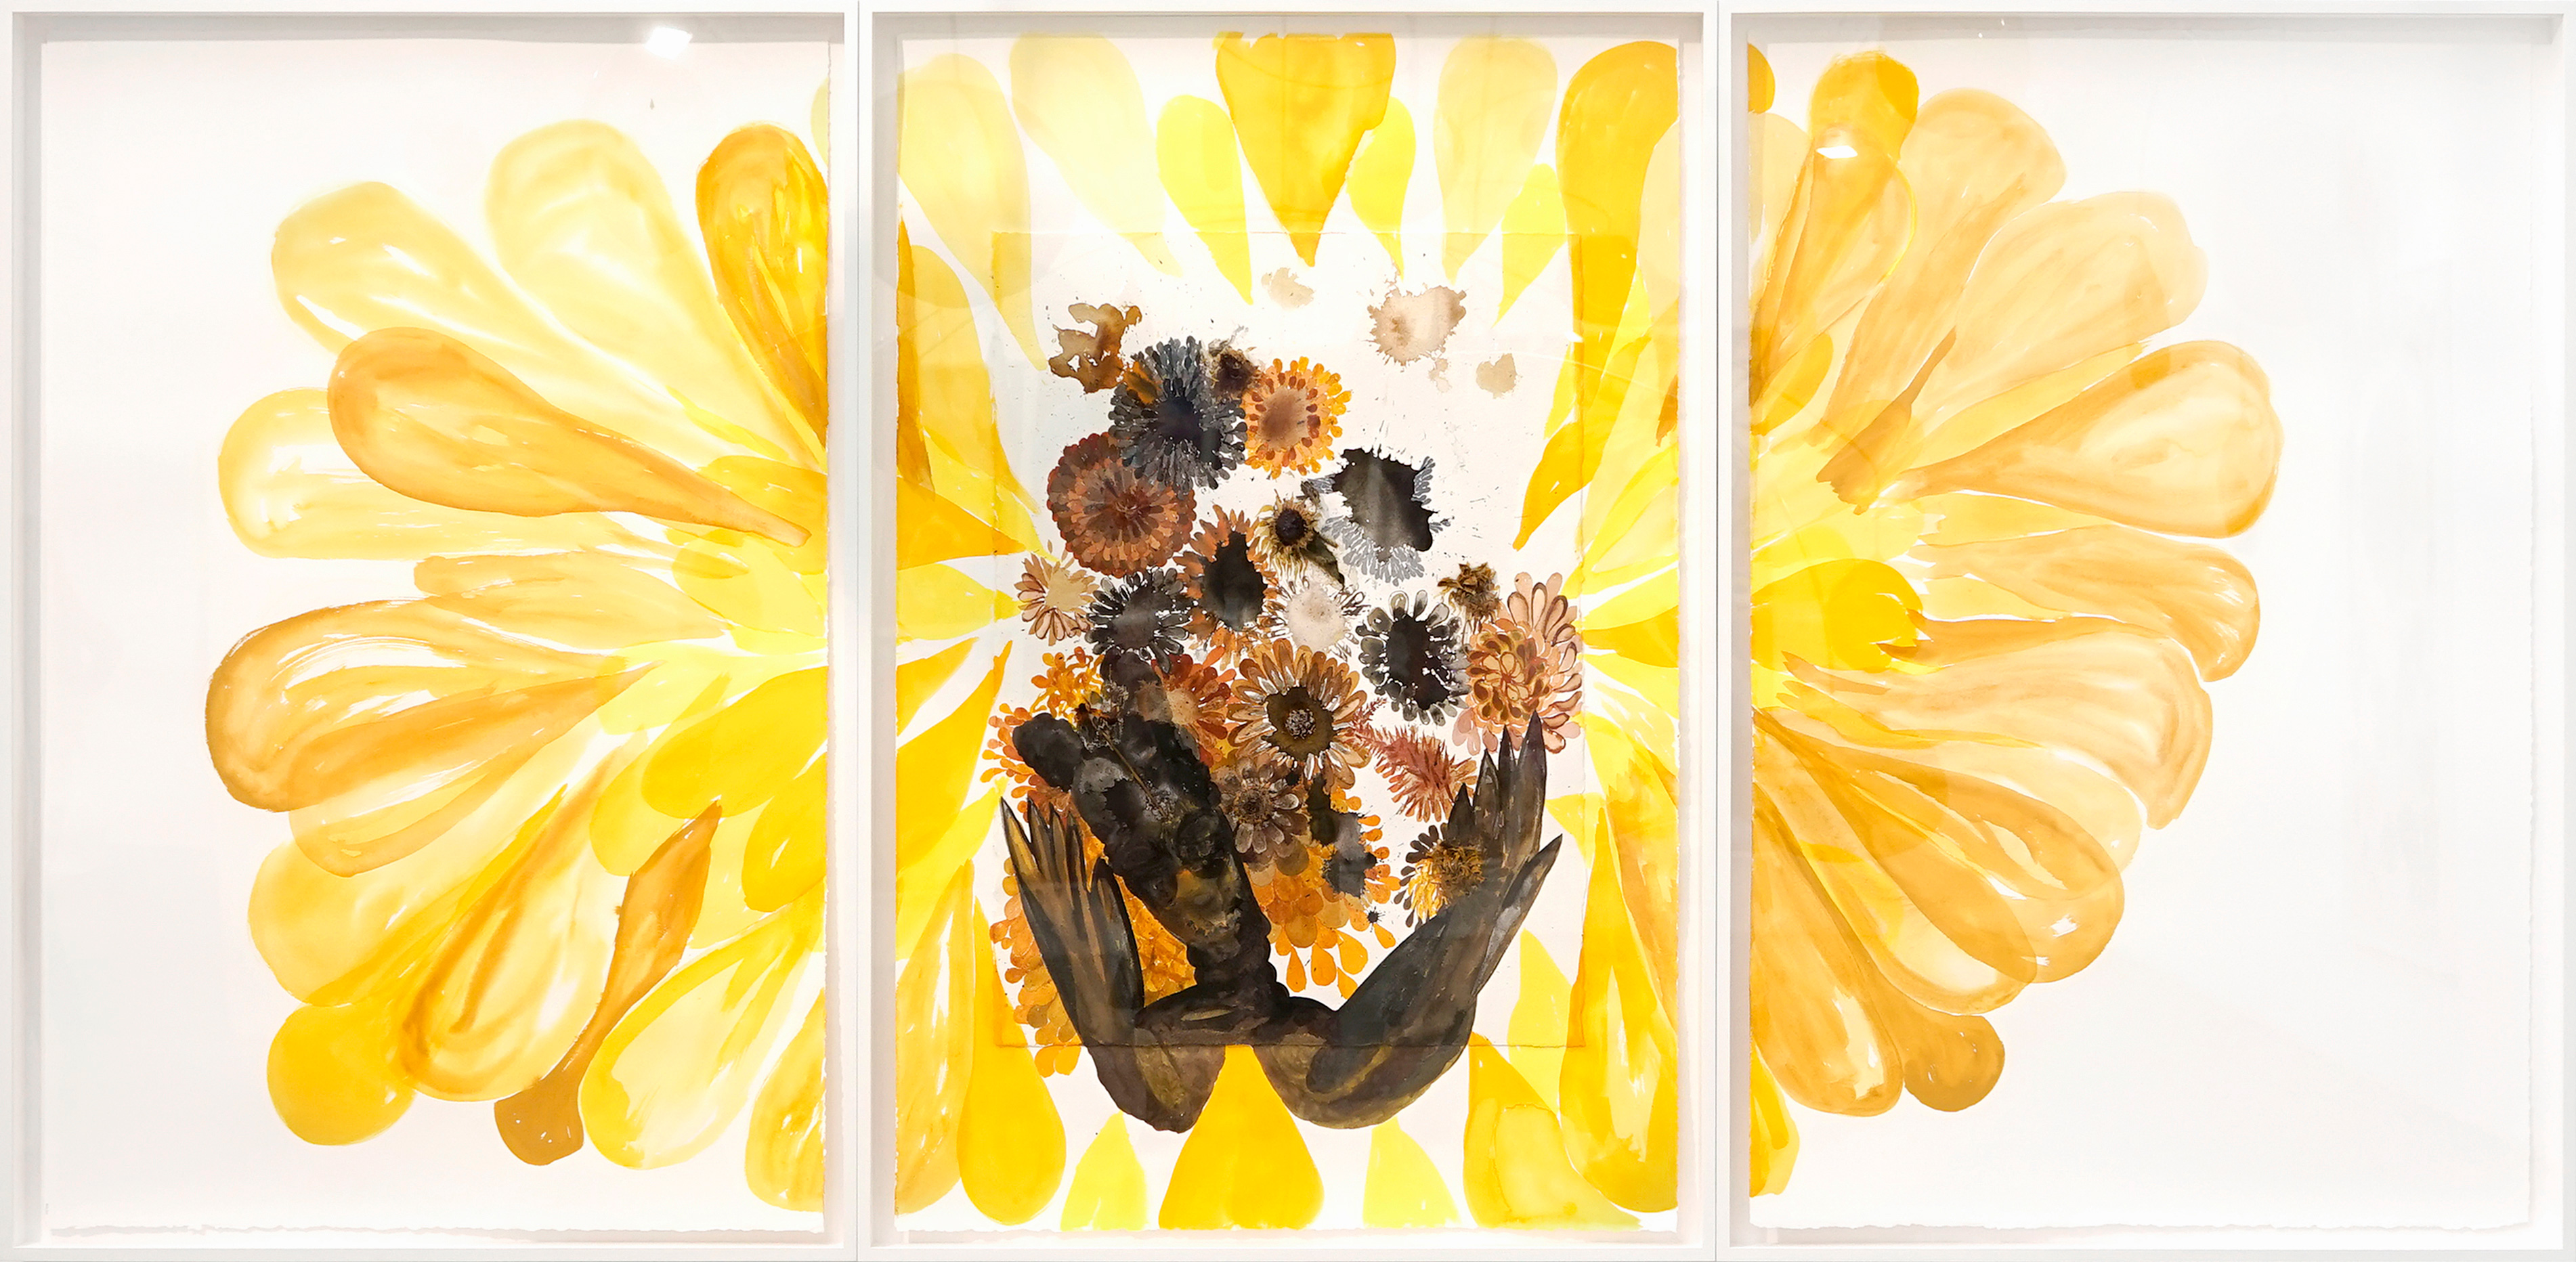 Galerie Barbara Thumm \ María Magdalen Campos-Pons – The Rise of the Butterflies \ Untitled, (2021)